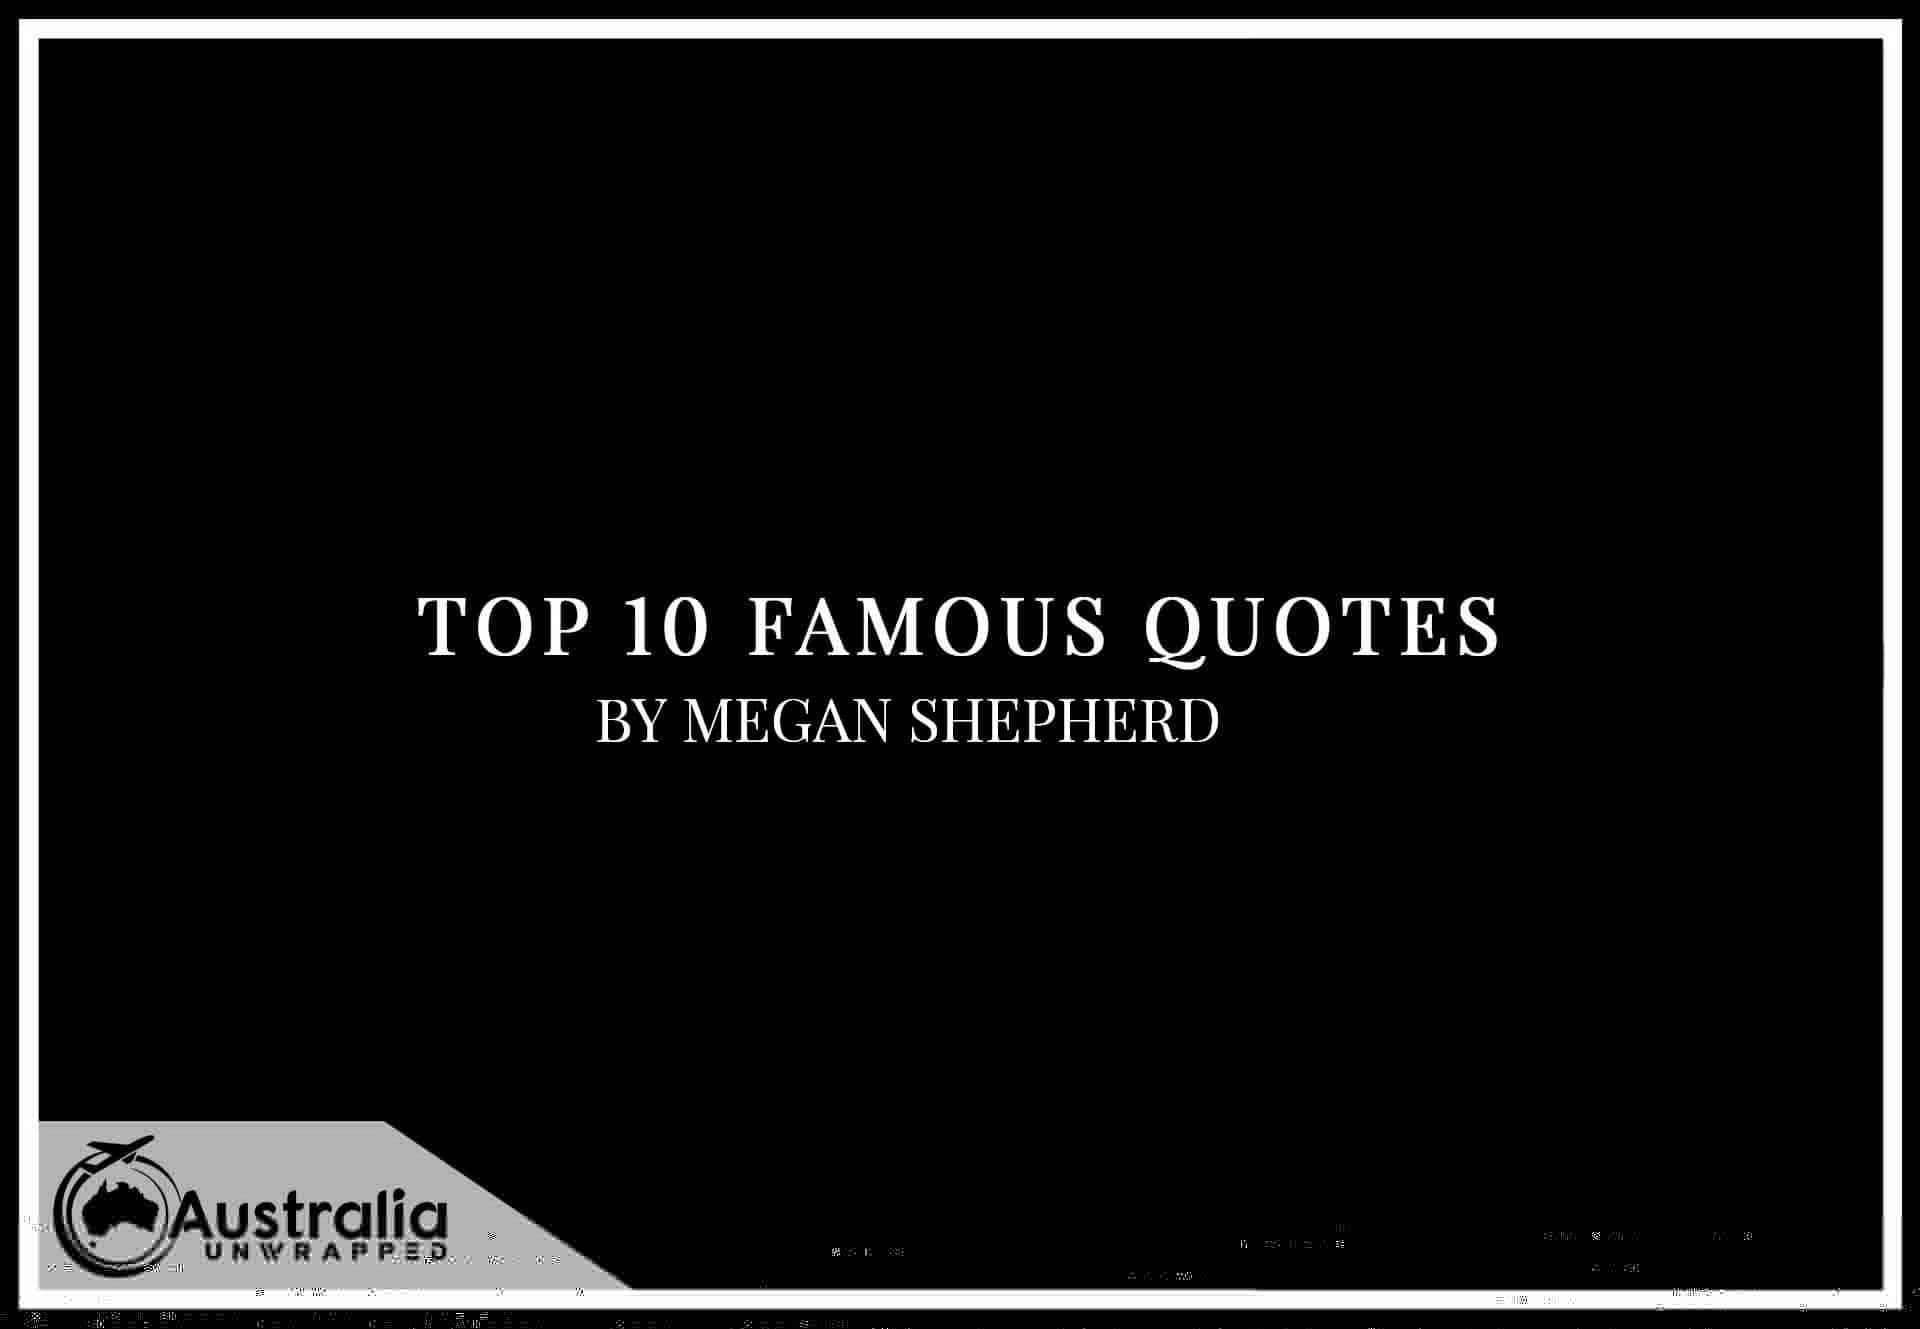 Top 10 Famous Quotes by Author Megan Shepherd